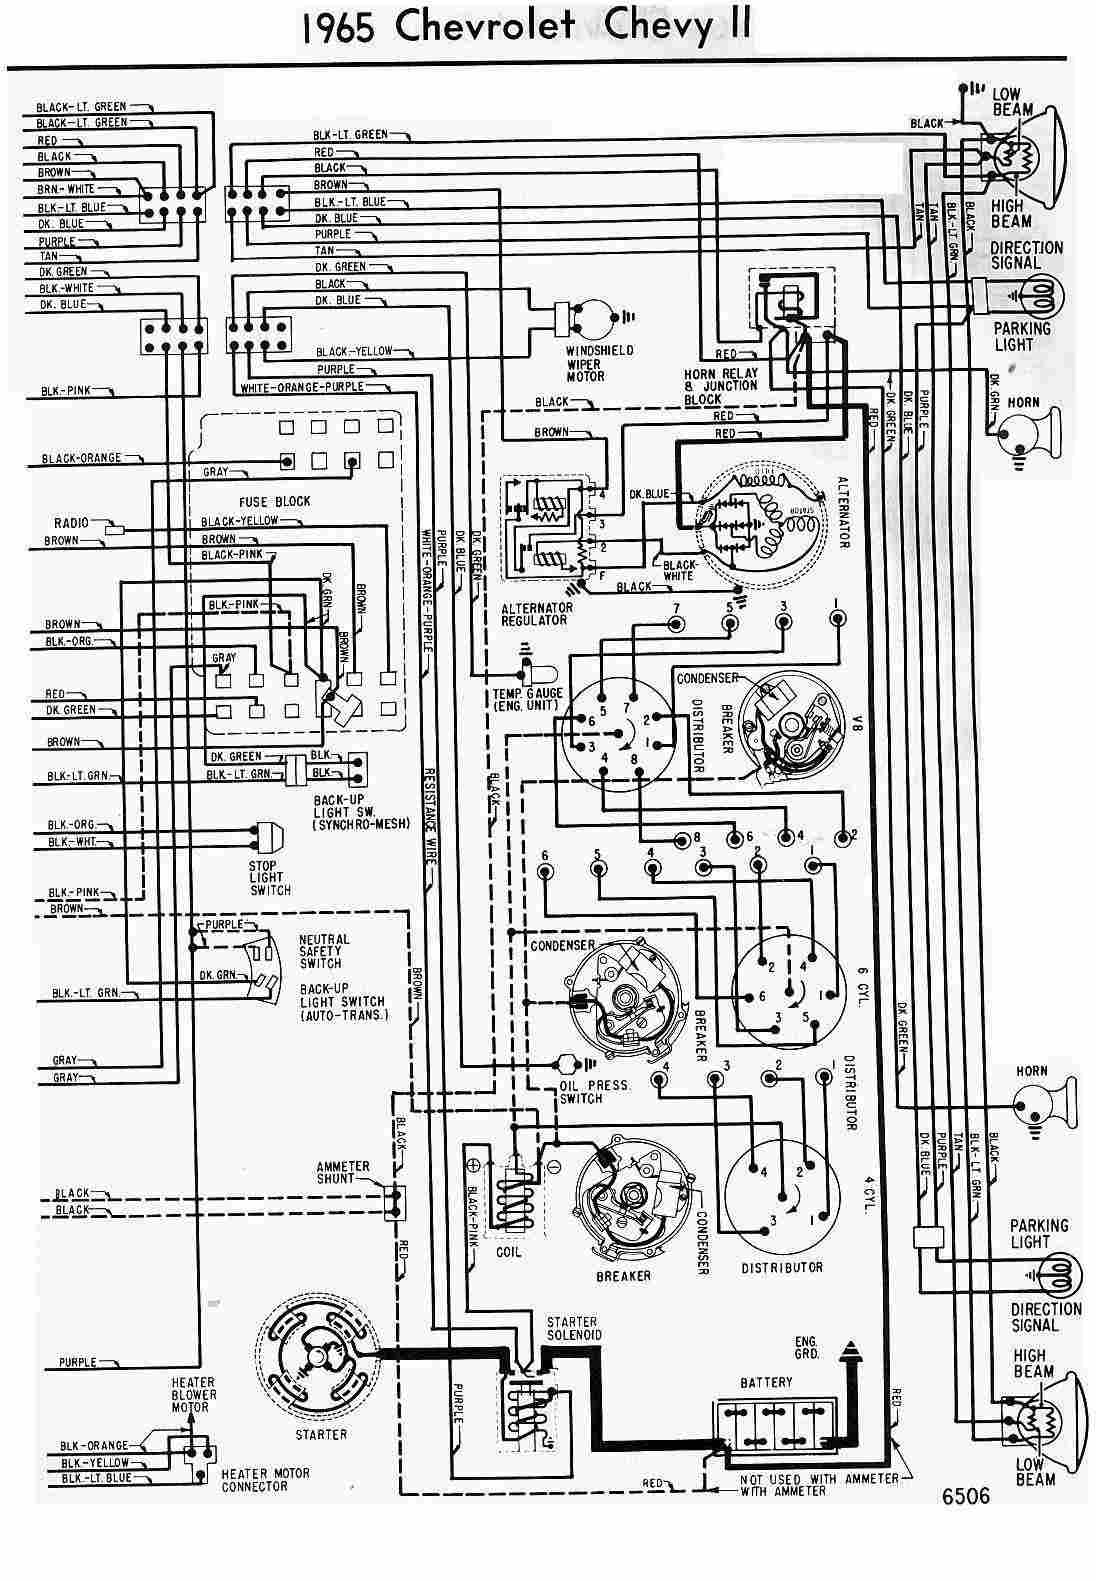 hight resolution of 1970 camaro wiring diagram as well chevy wiring diagrams scematic 1972 chevy camaro wiring schematic 1972